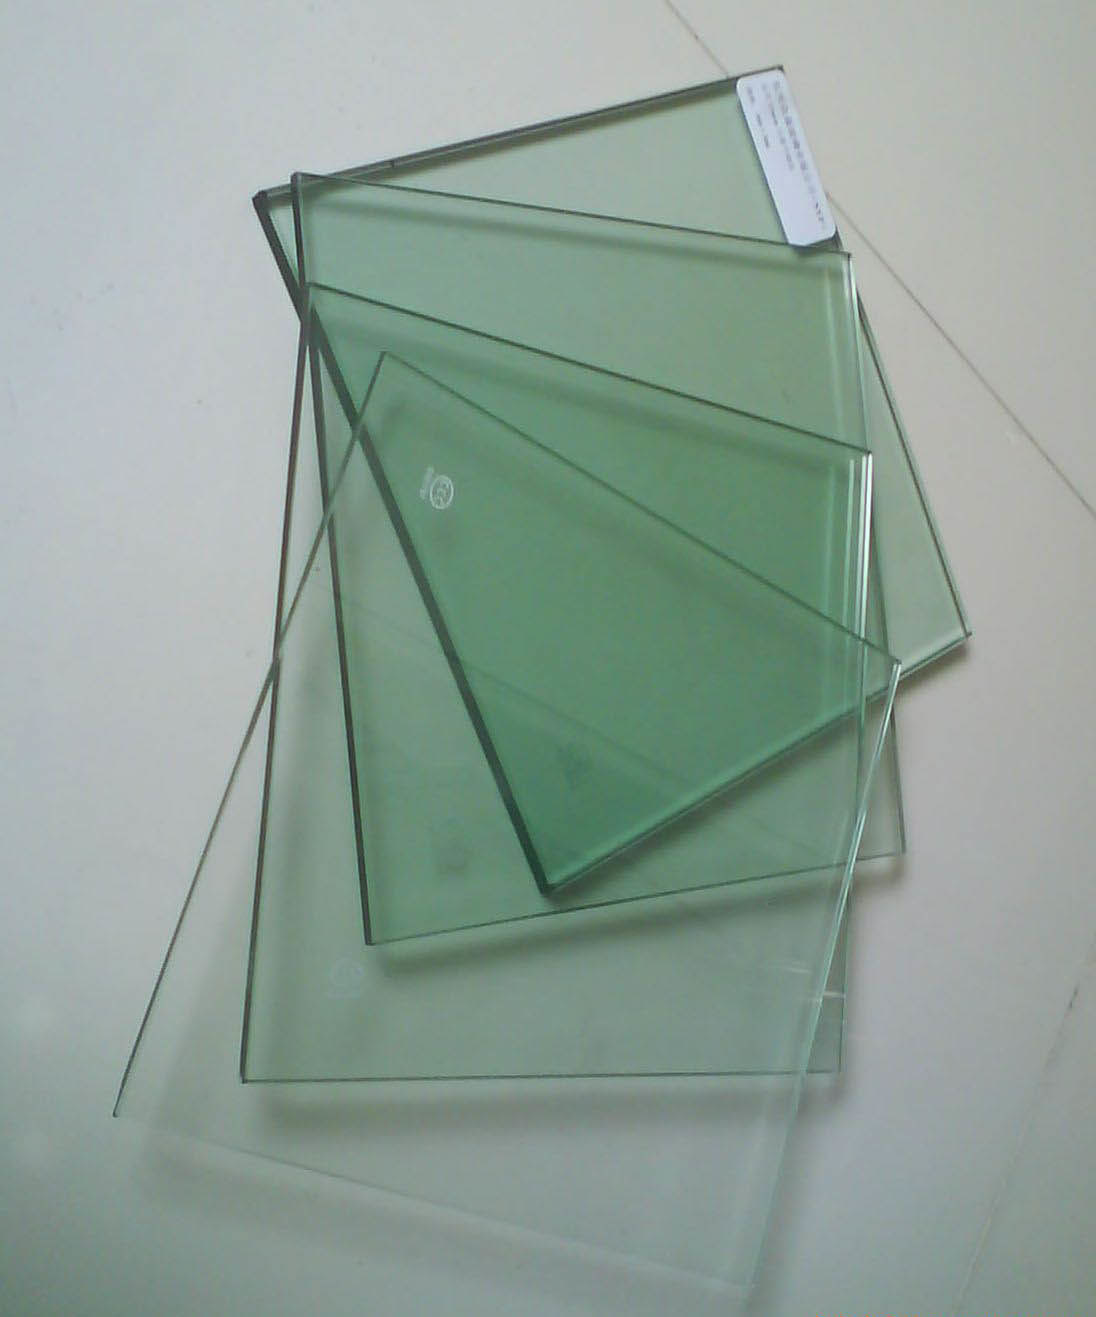 tempered glass Tempered glass can be temperamental to cut follow these steps to avoid injuring your glass and yourself.